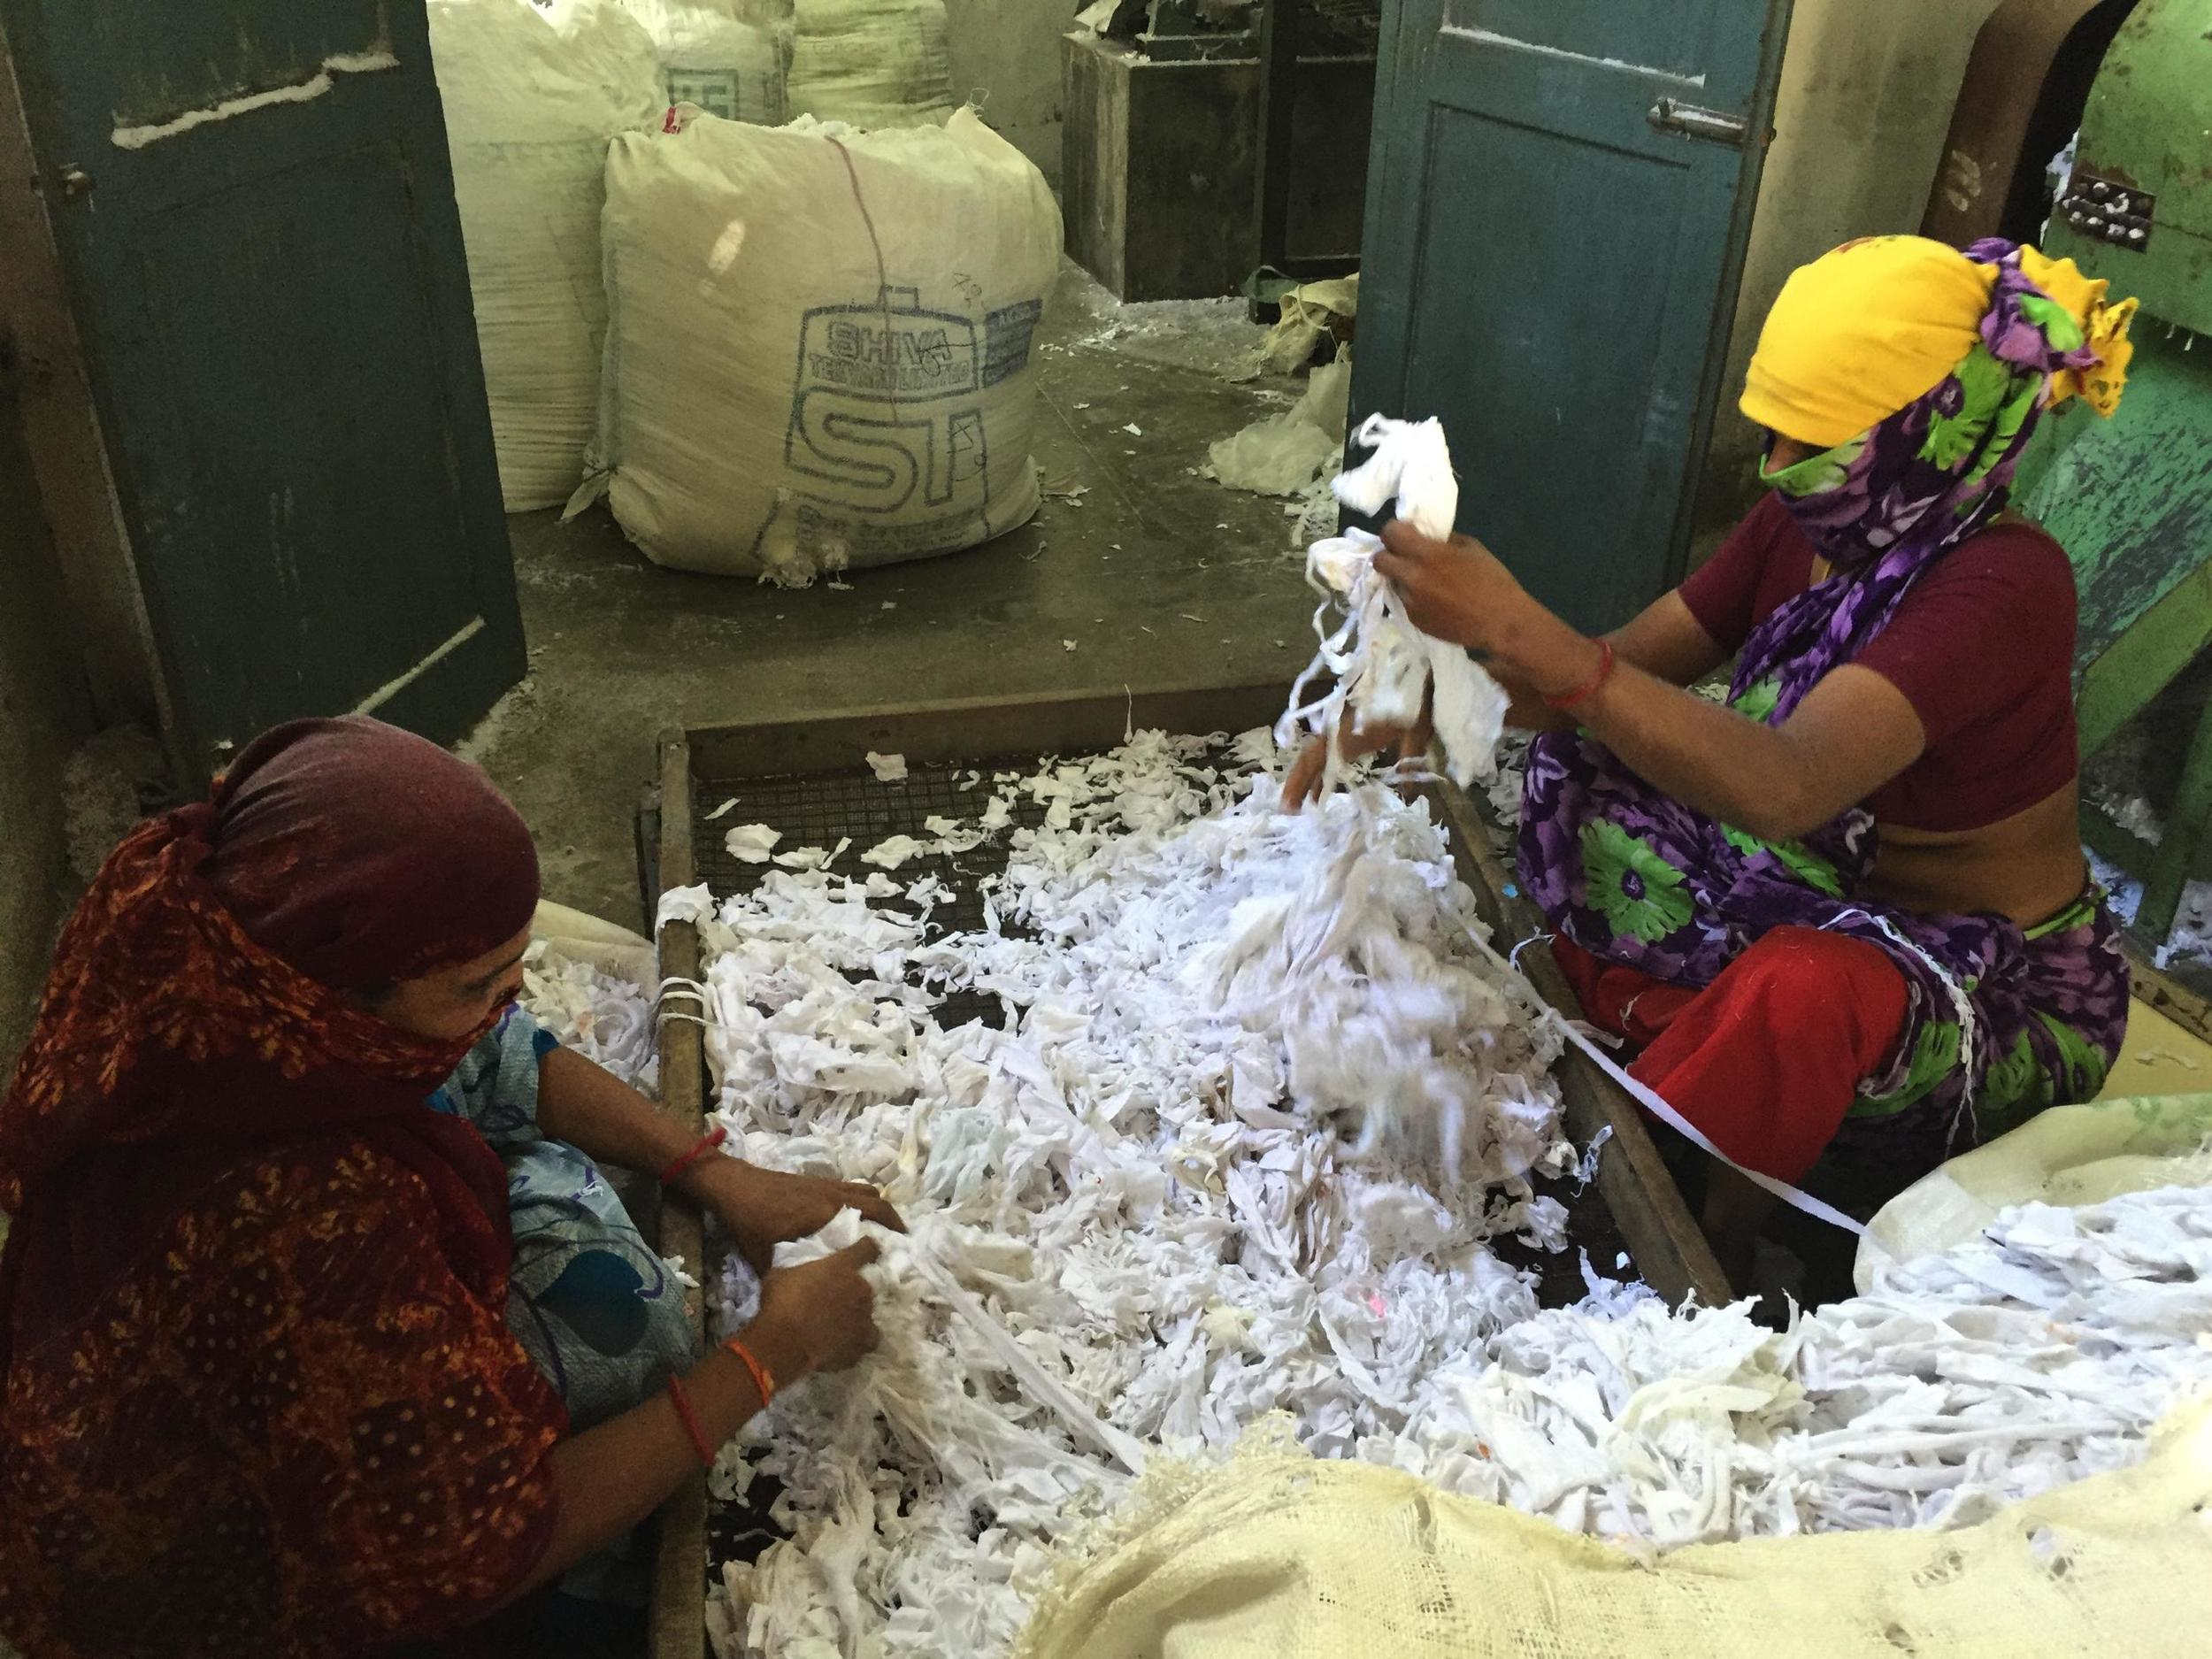 Recycled cotton to be made into paper